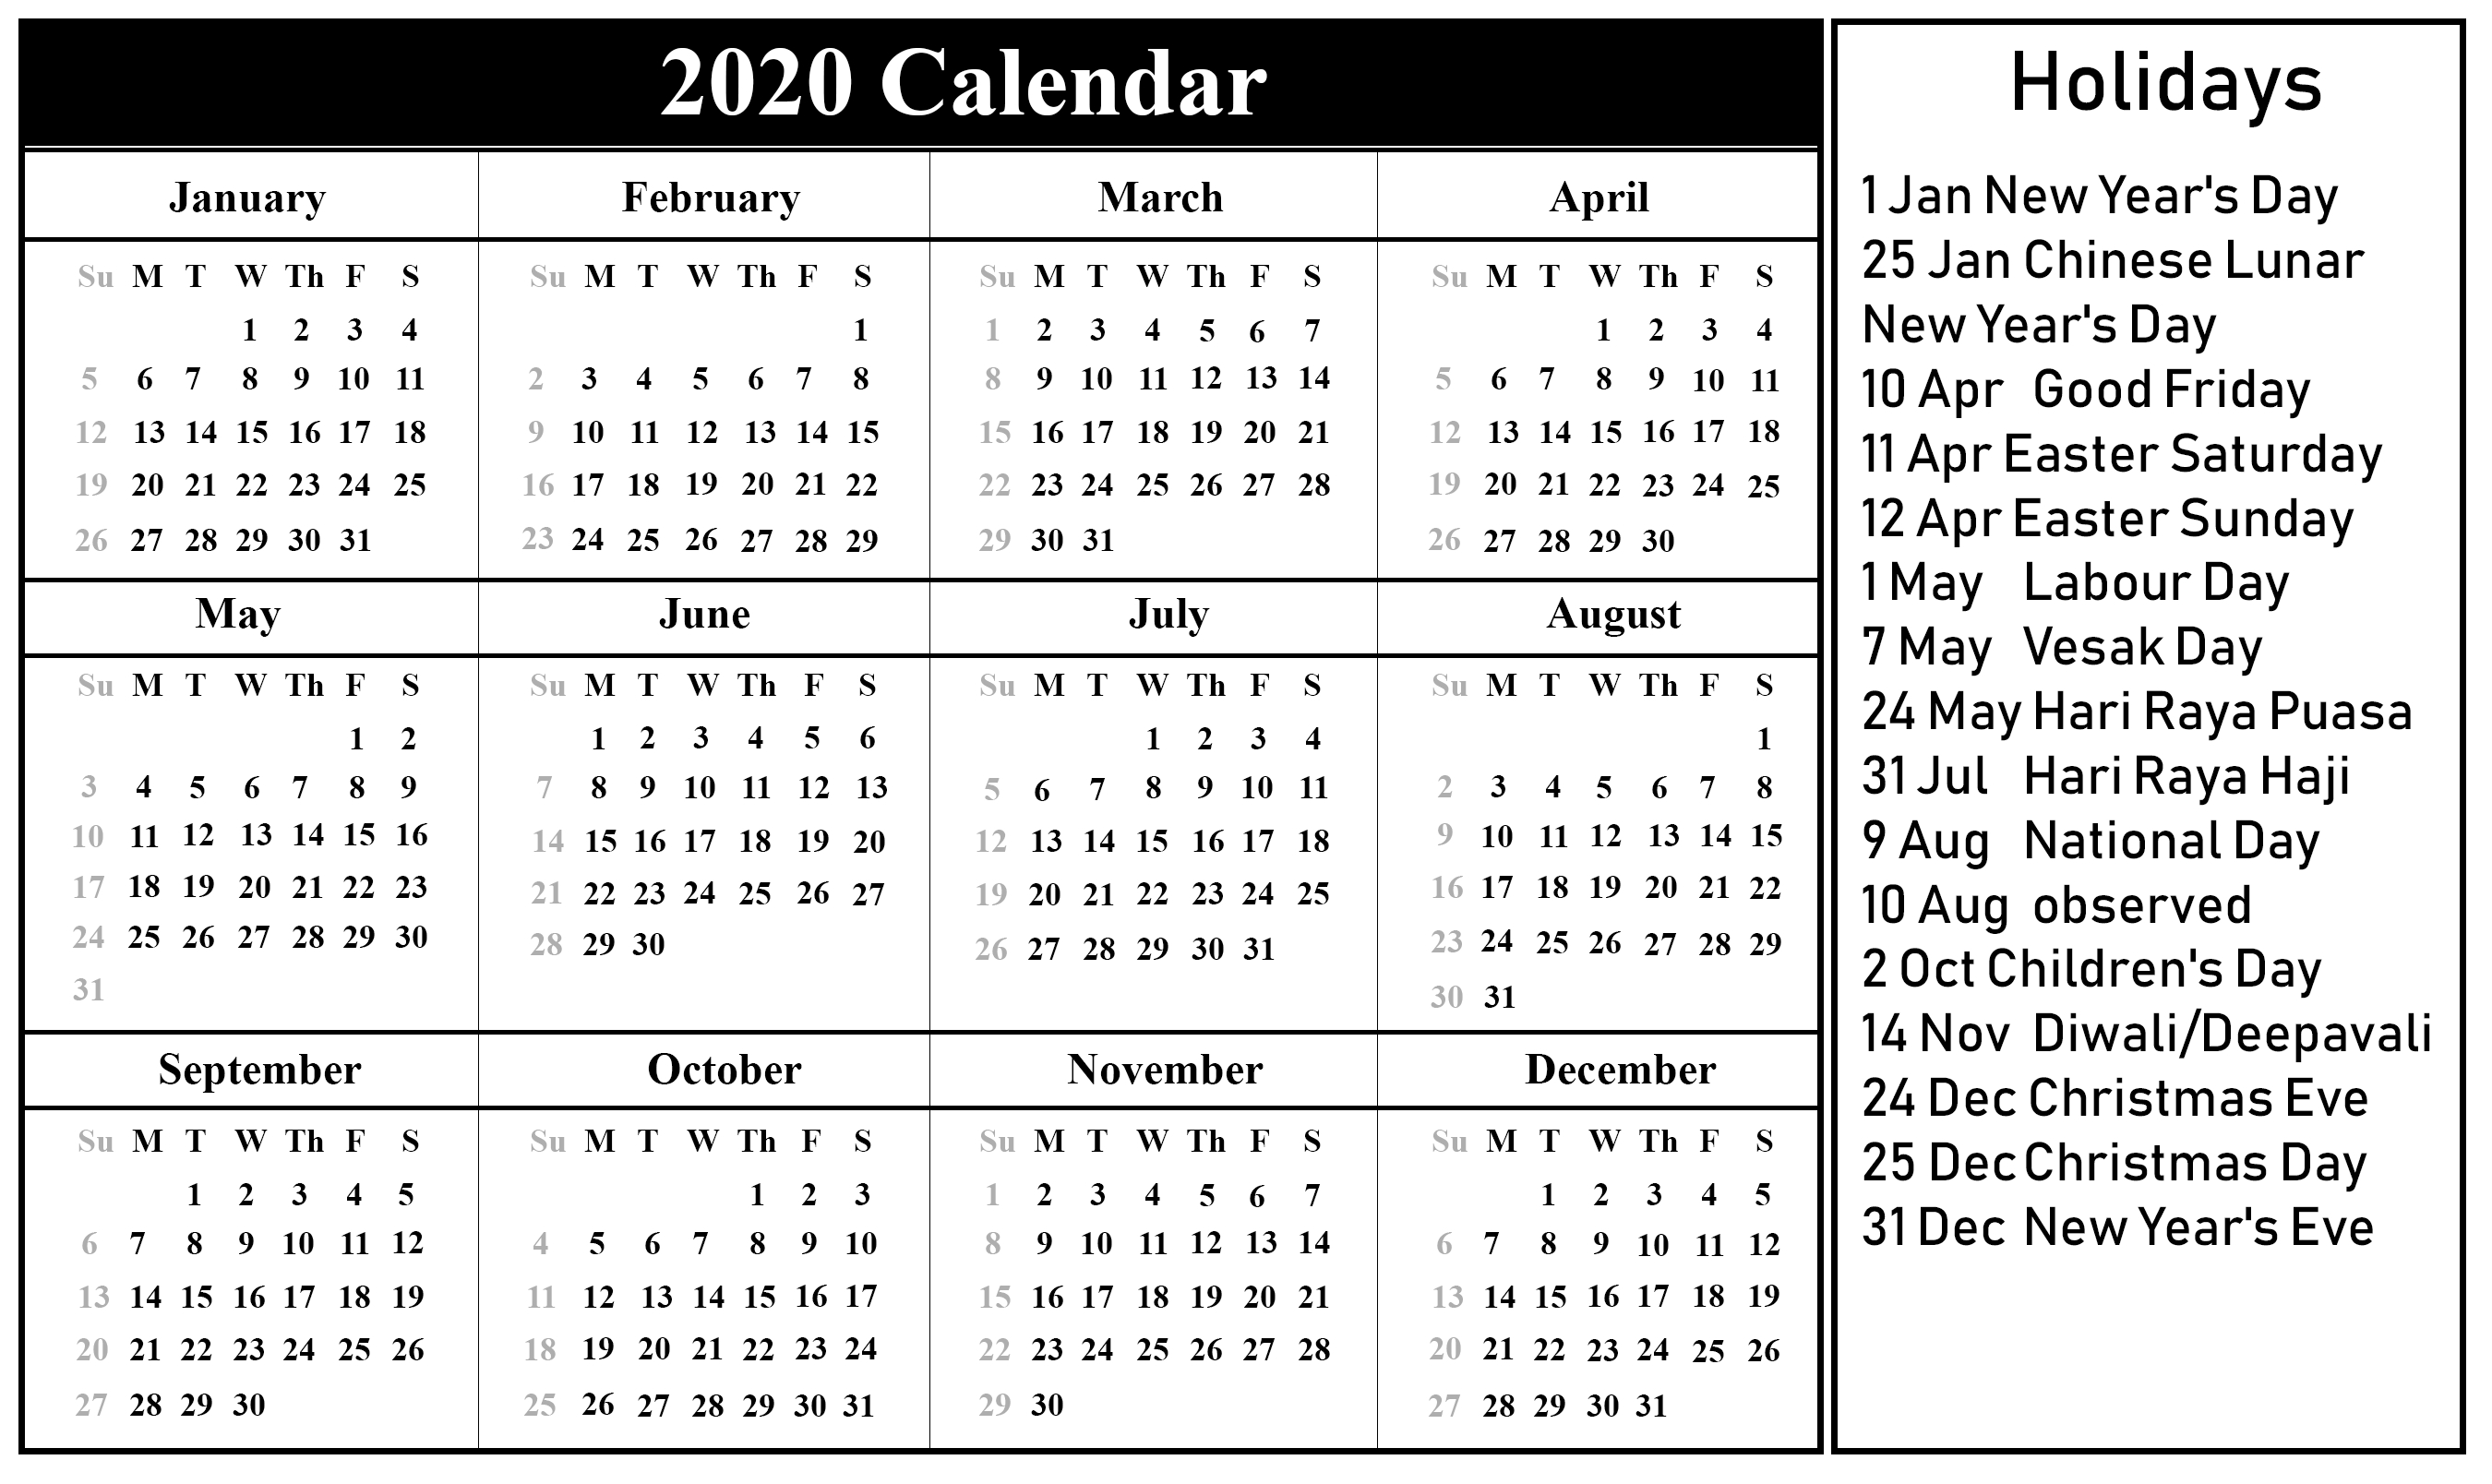 Singapore Calendar 2020 | Printable December Calendar Template throughout 2020 Sri Lanka Calendar